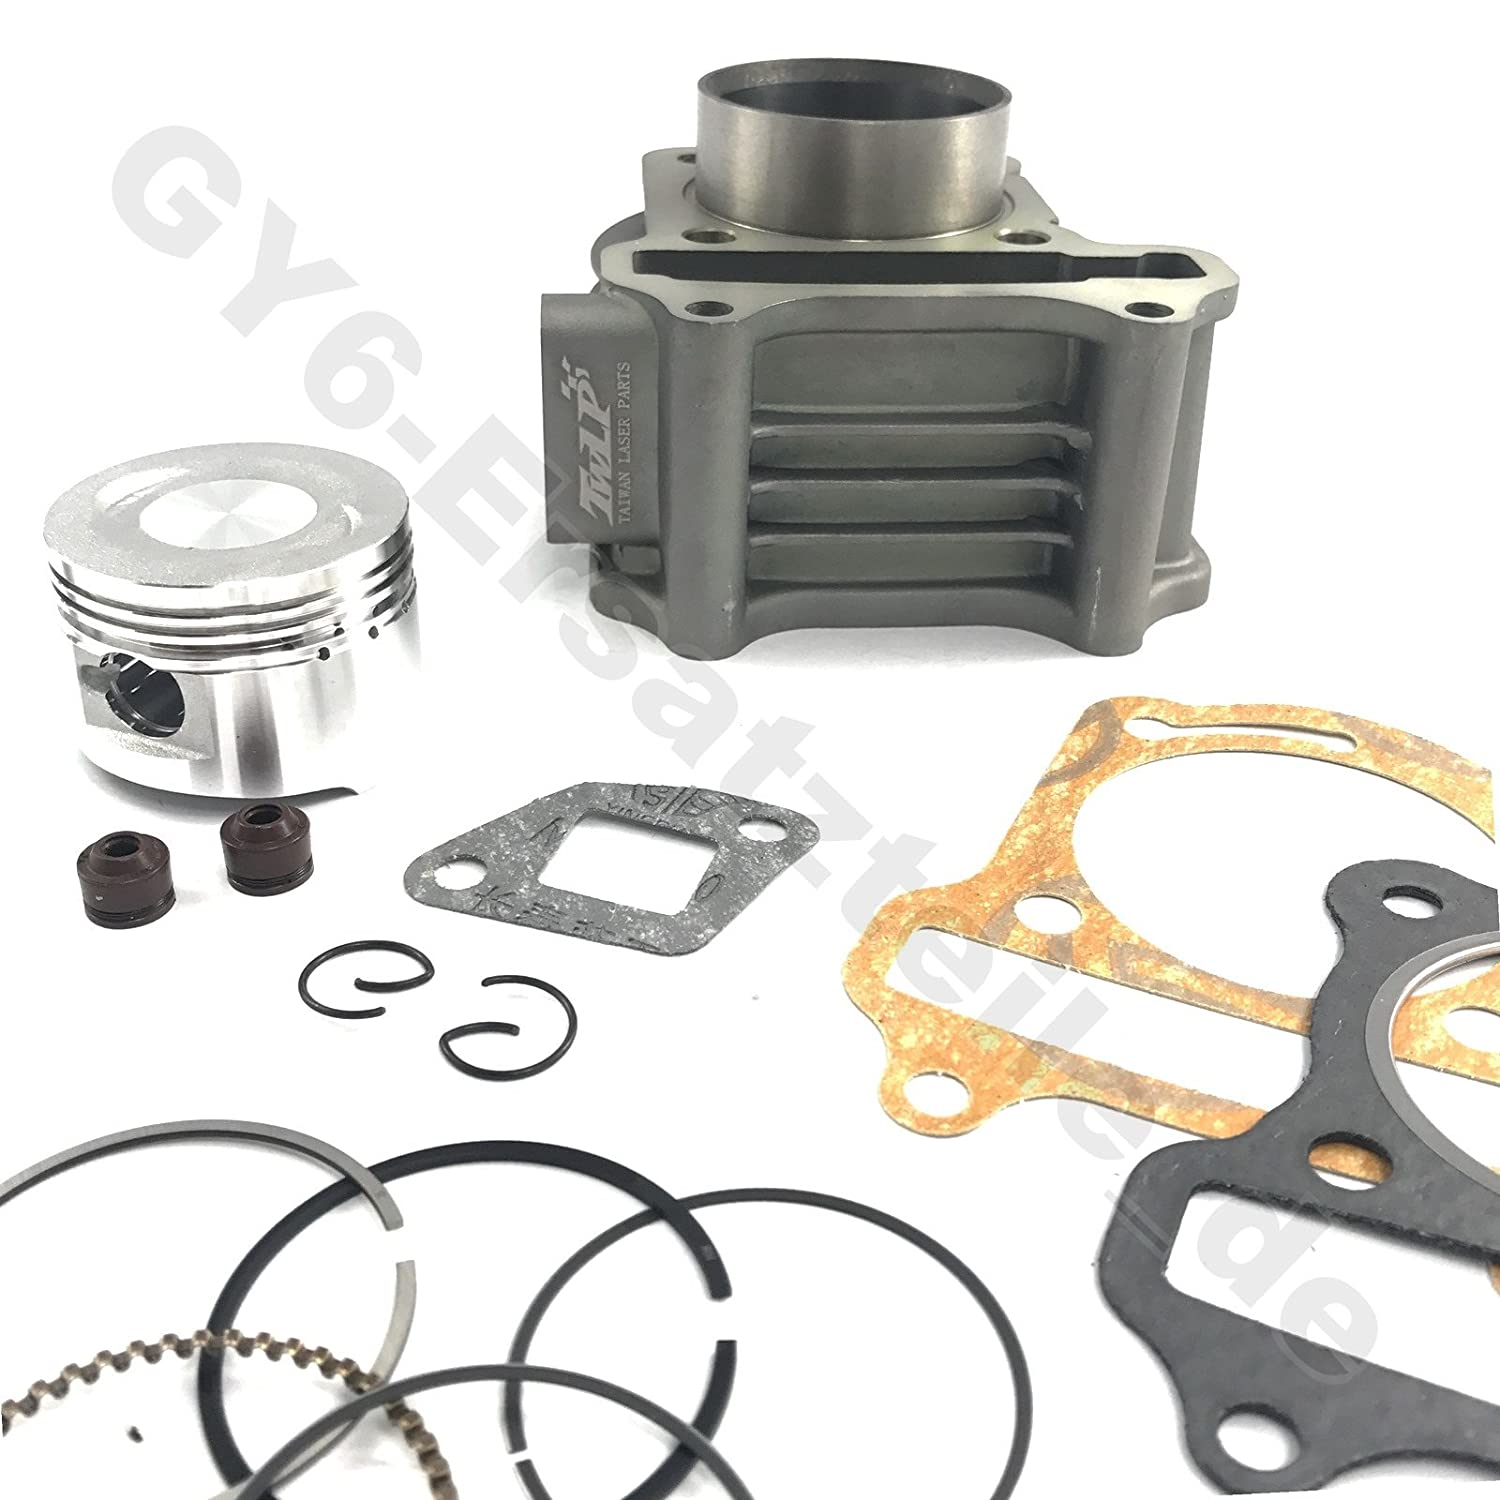 HIGH PERFORMANCE TUNING CYLINDER UPGRADE KIT 47mm 80CCM CYLINDER TAIWAN LASER PARTS 139 QMA//B GY6 4 STROKE CHINESE SCOOTER JONWAY JMSTAR ROKETA PEACE BMS BENZHOU TAOTAO BAJA ZNEN LANCE JCL ETC.